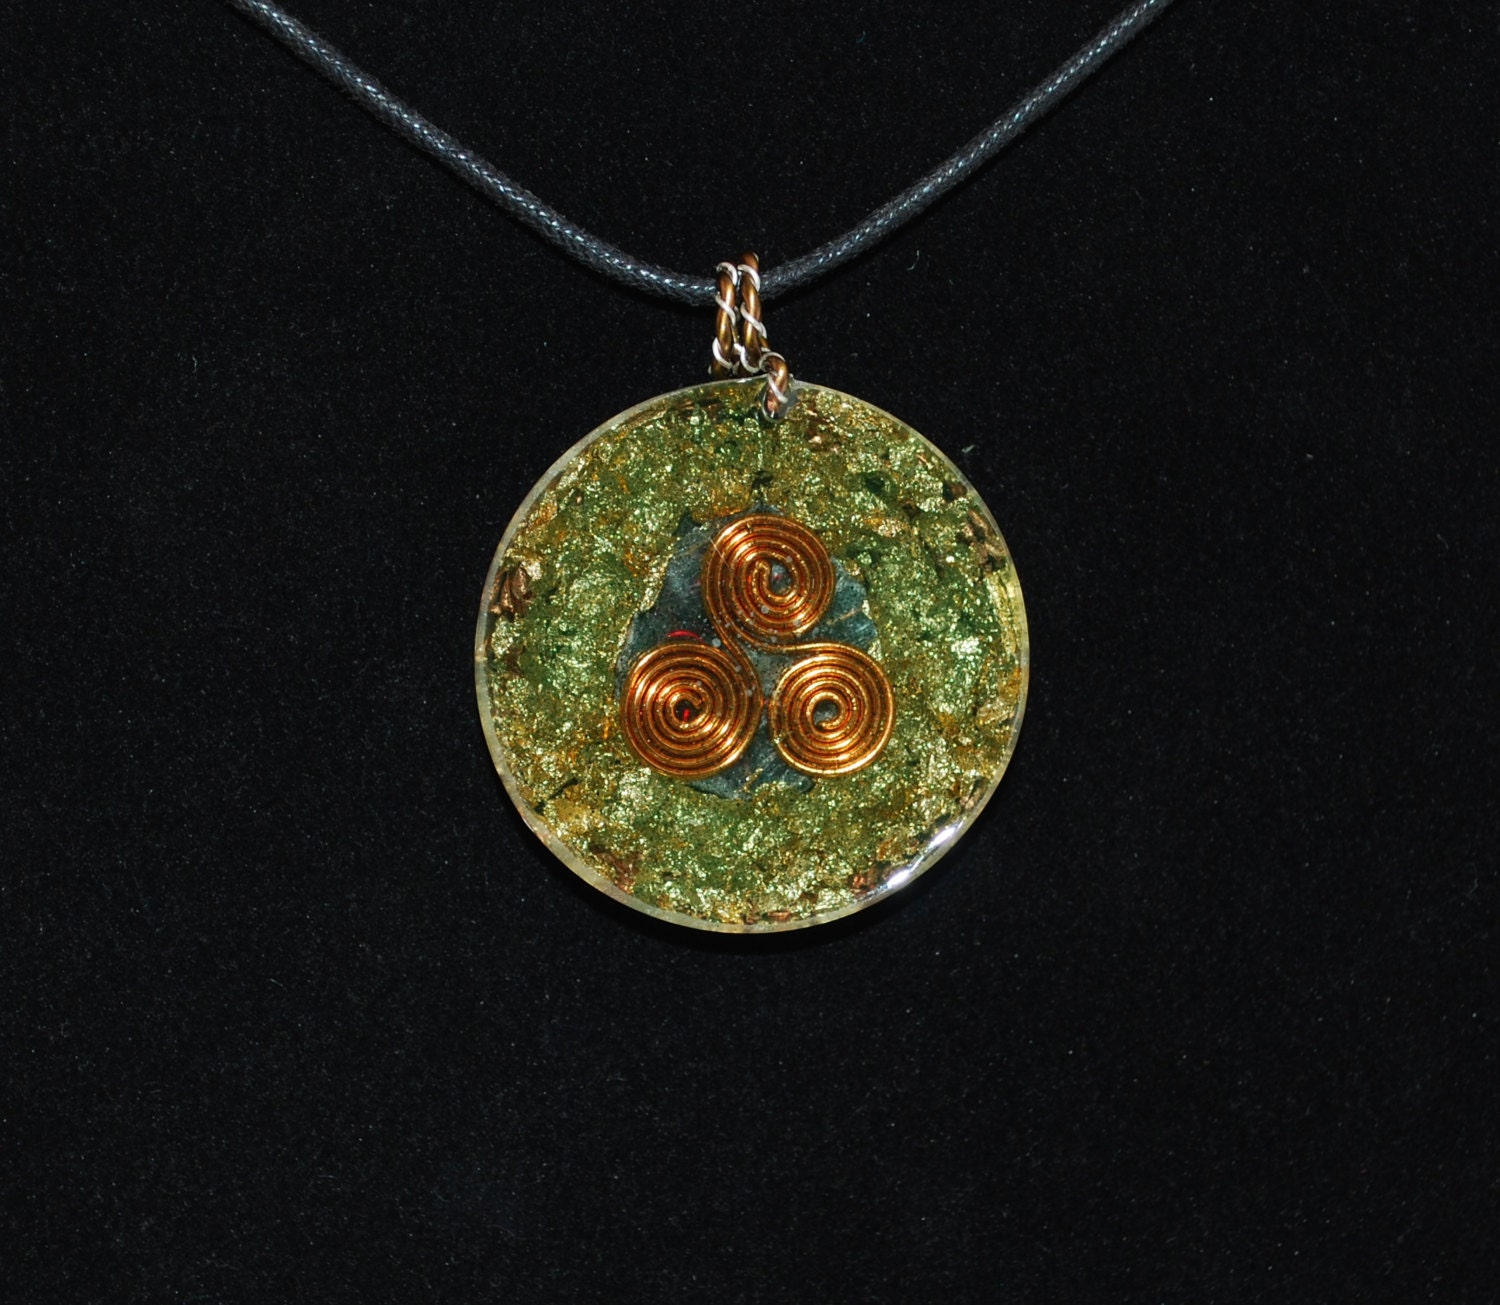 Electromagnetic Radiation Protection Necklace: Radiation Protection Orgone Pendant By ThePhilosopherStones